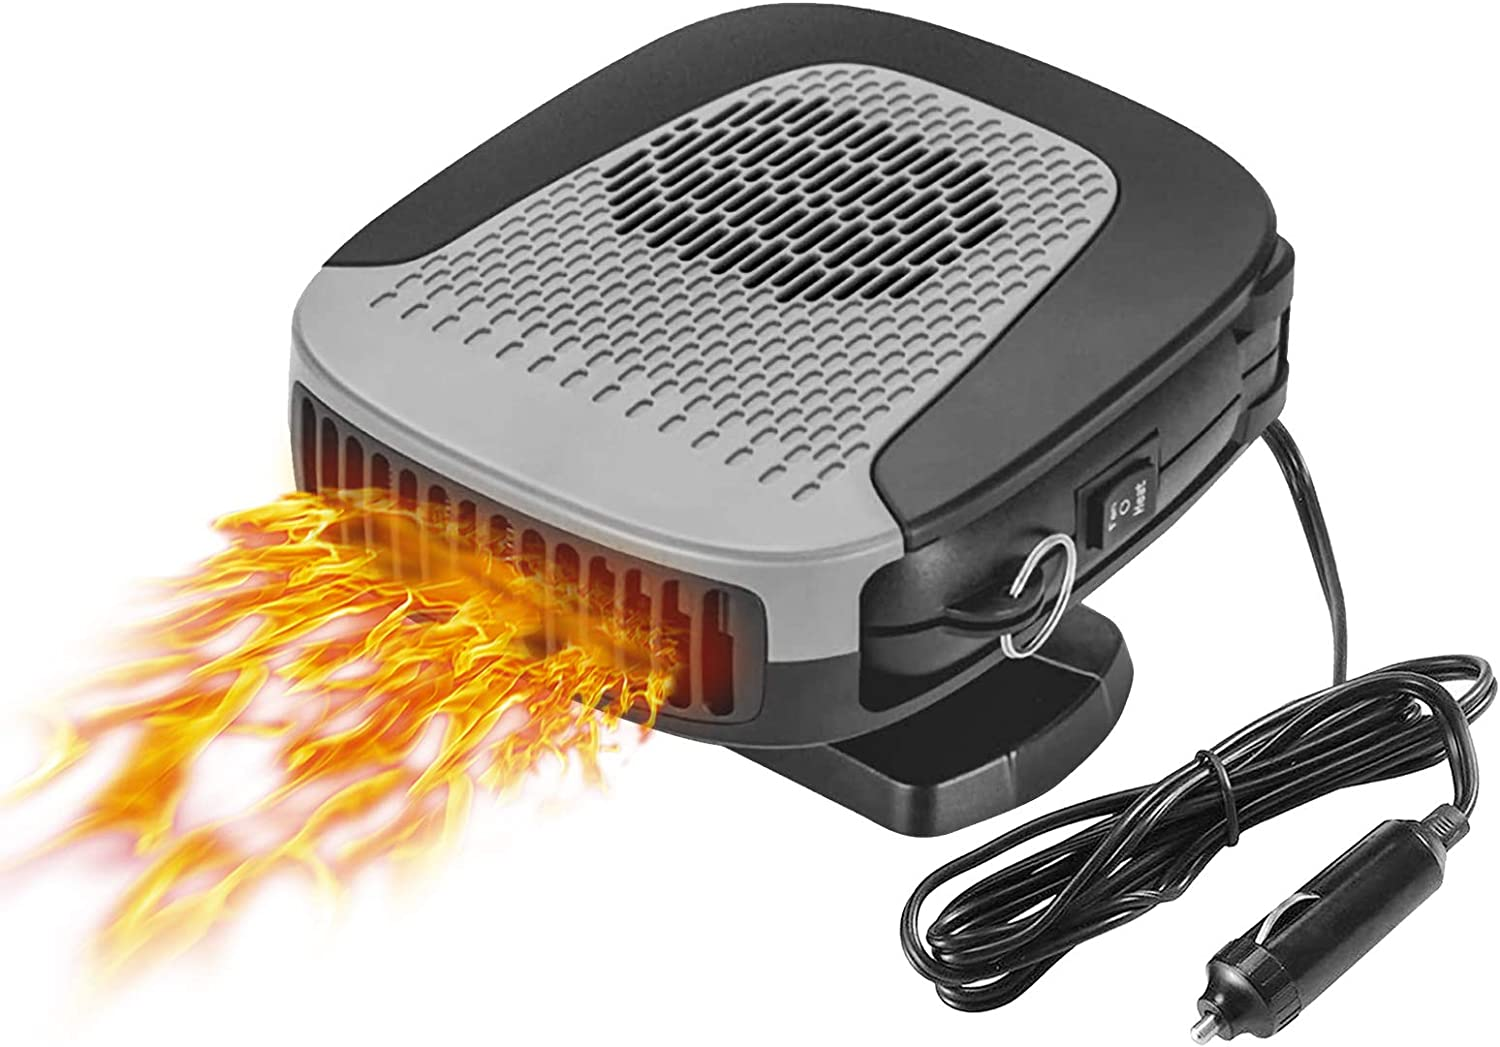 Birthday Gift - Car Heater, 12V 150W Car Heater 2 in 1 Heating Fan Defroster Demister Car Amplifier Cooling Fans Automotive Replacement Heater for Car SUV Truck Rv Trailer